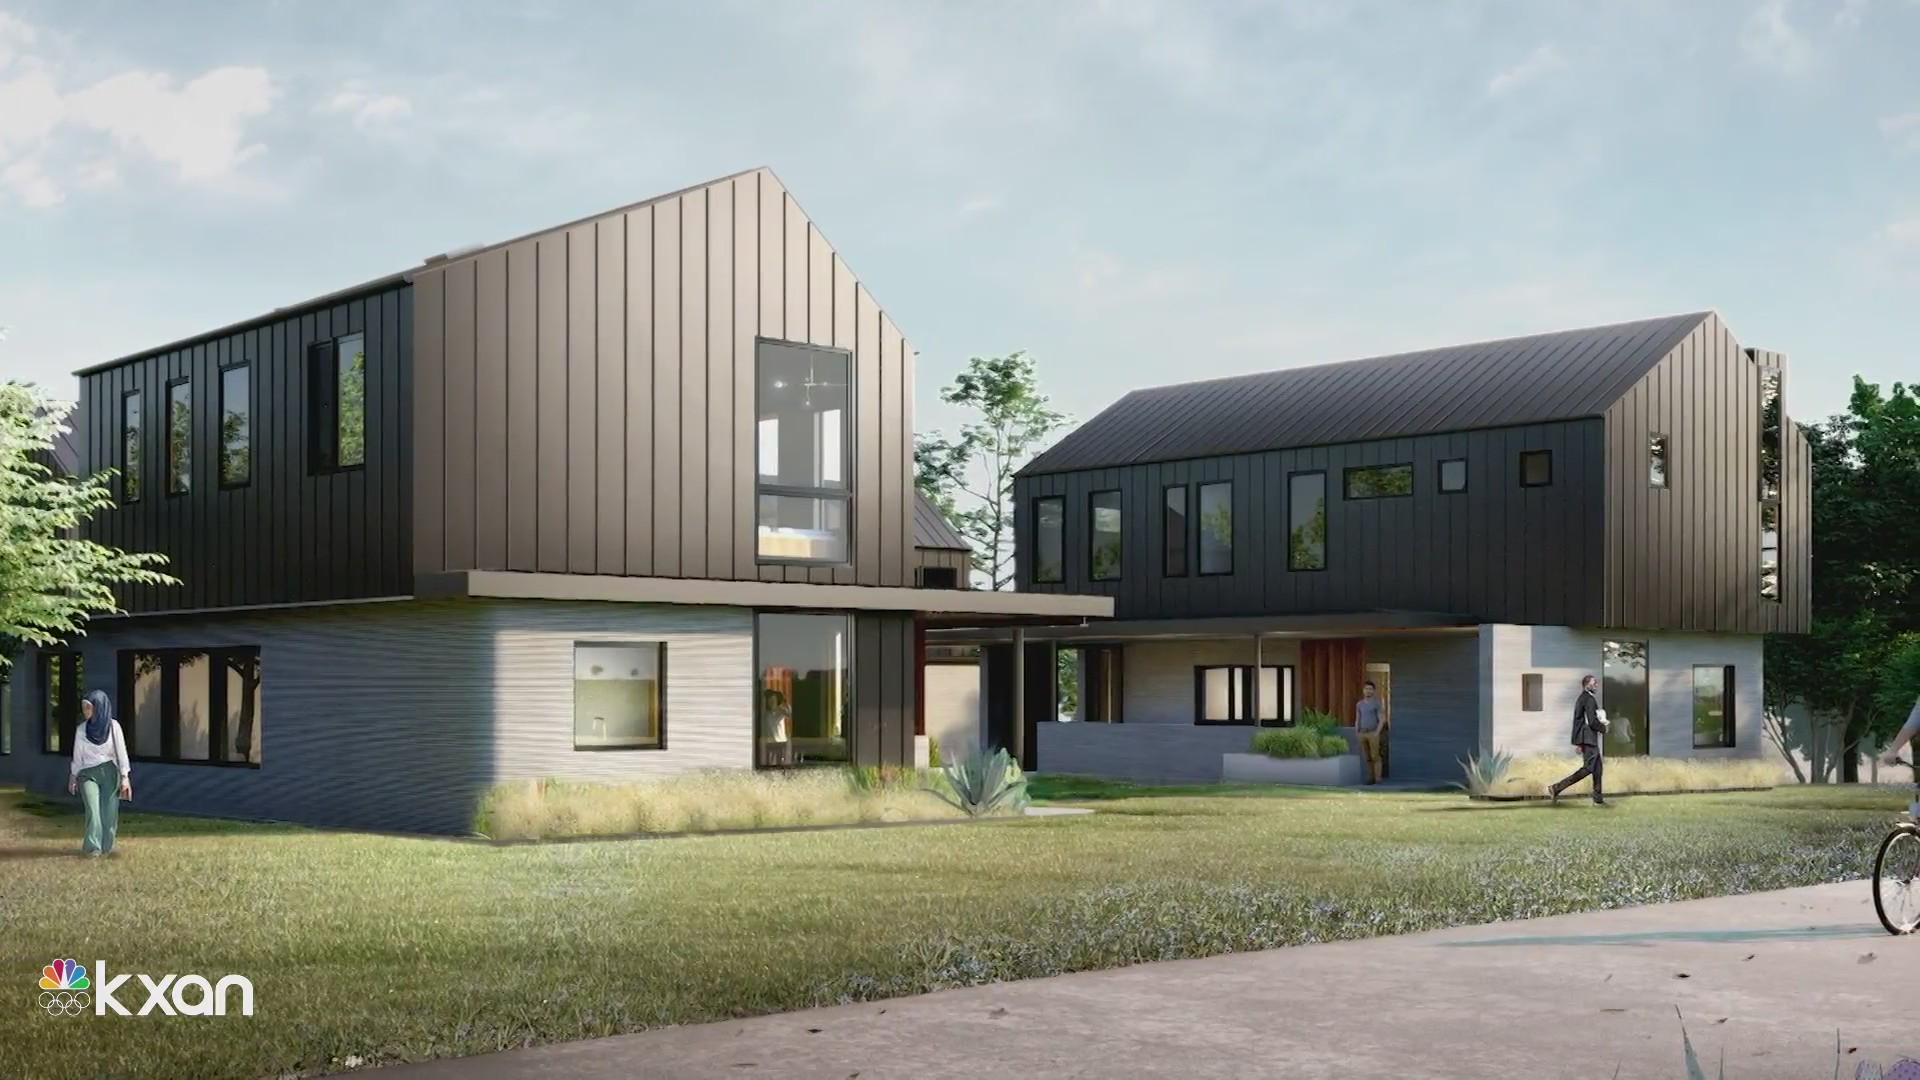 3D printed homes from Austin-based company Icon will be ready for move-in this summer, according to the company.